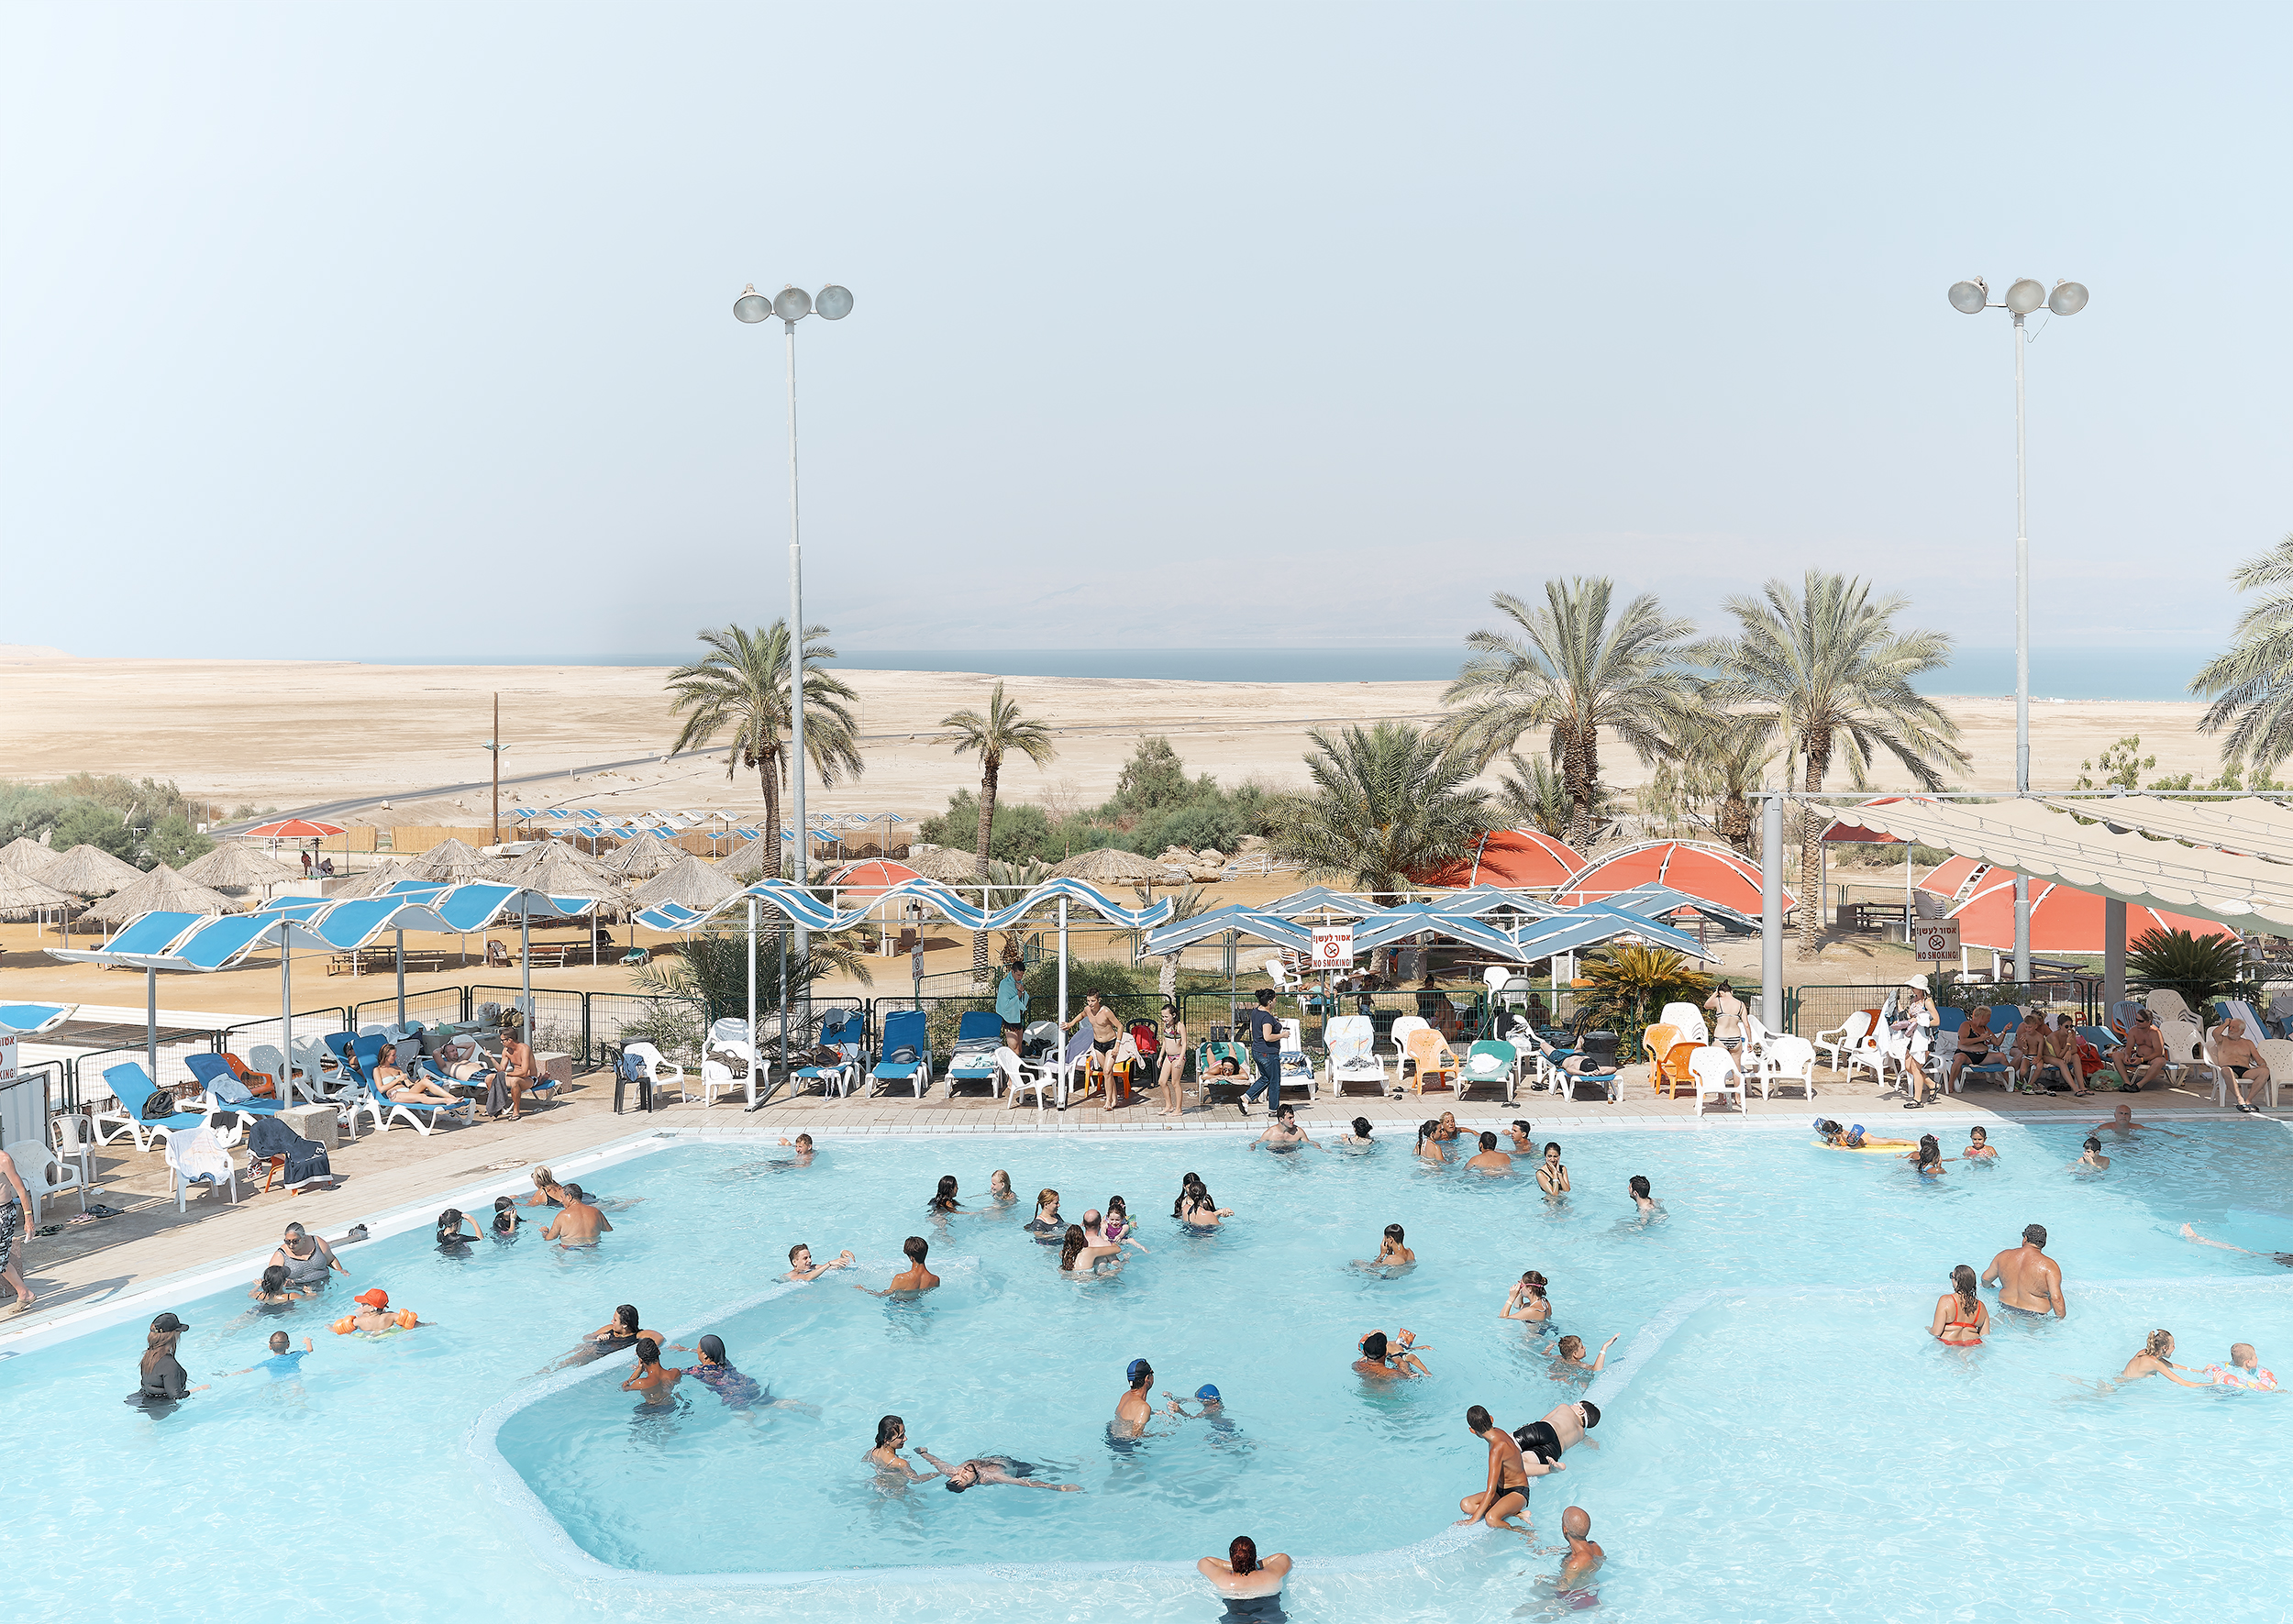 ZO_Pool, Dead Sea, Israel, 2017.jpg